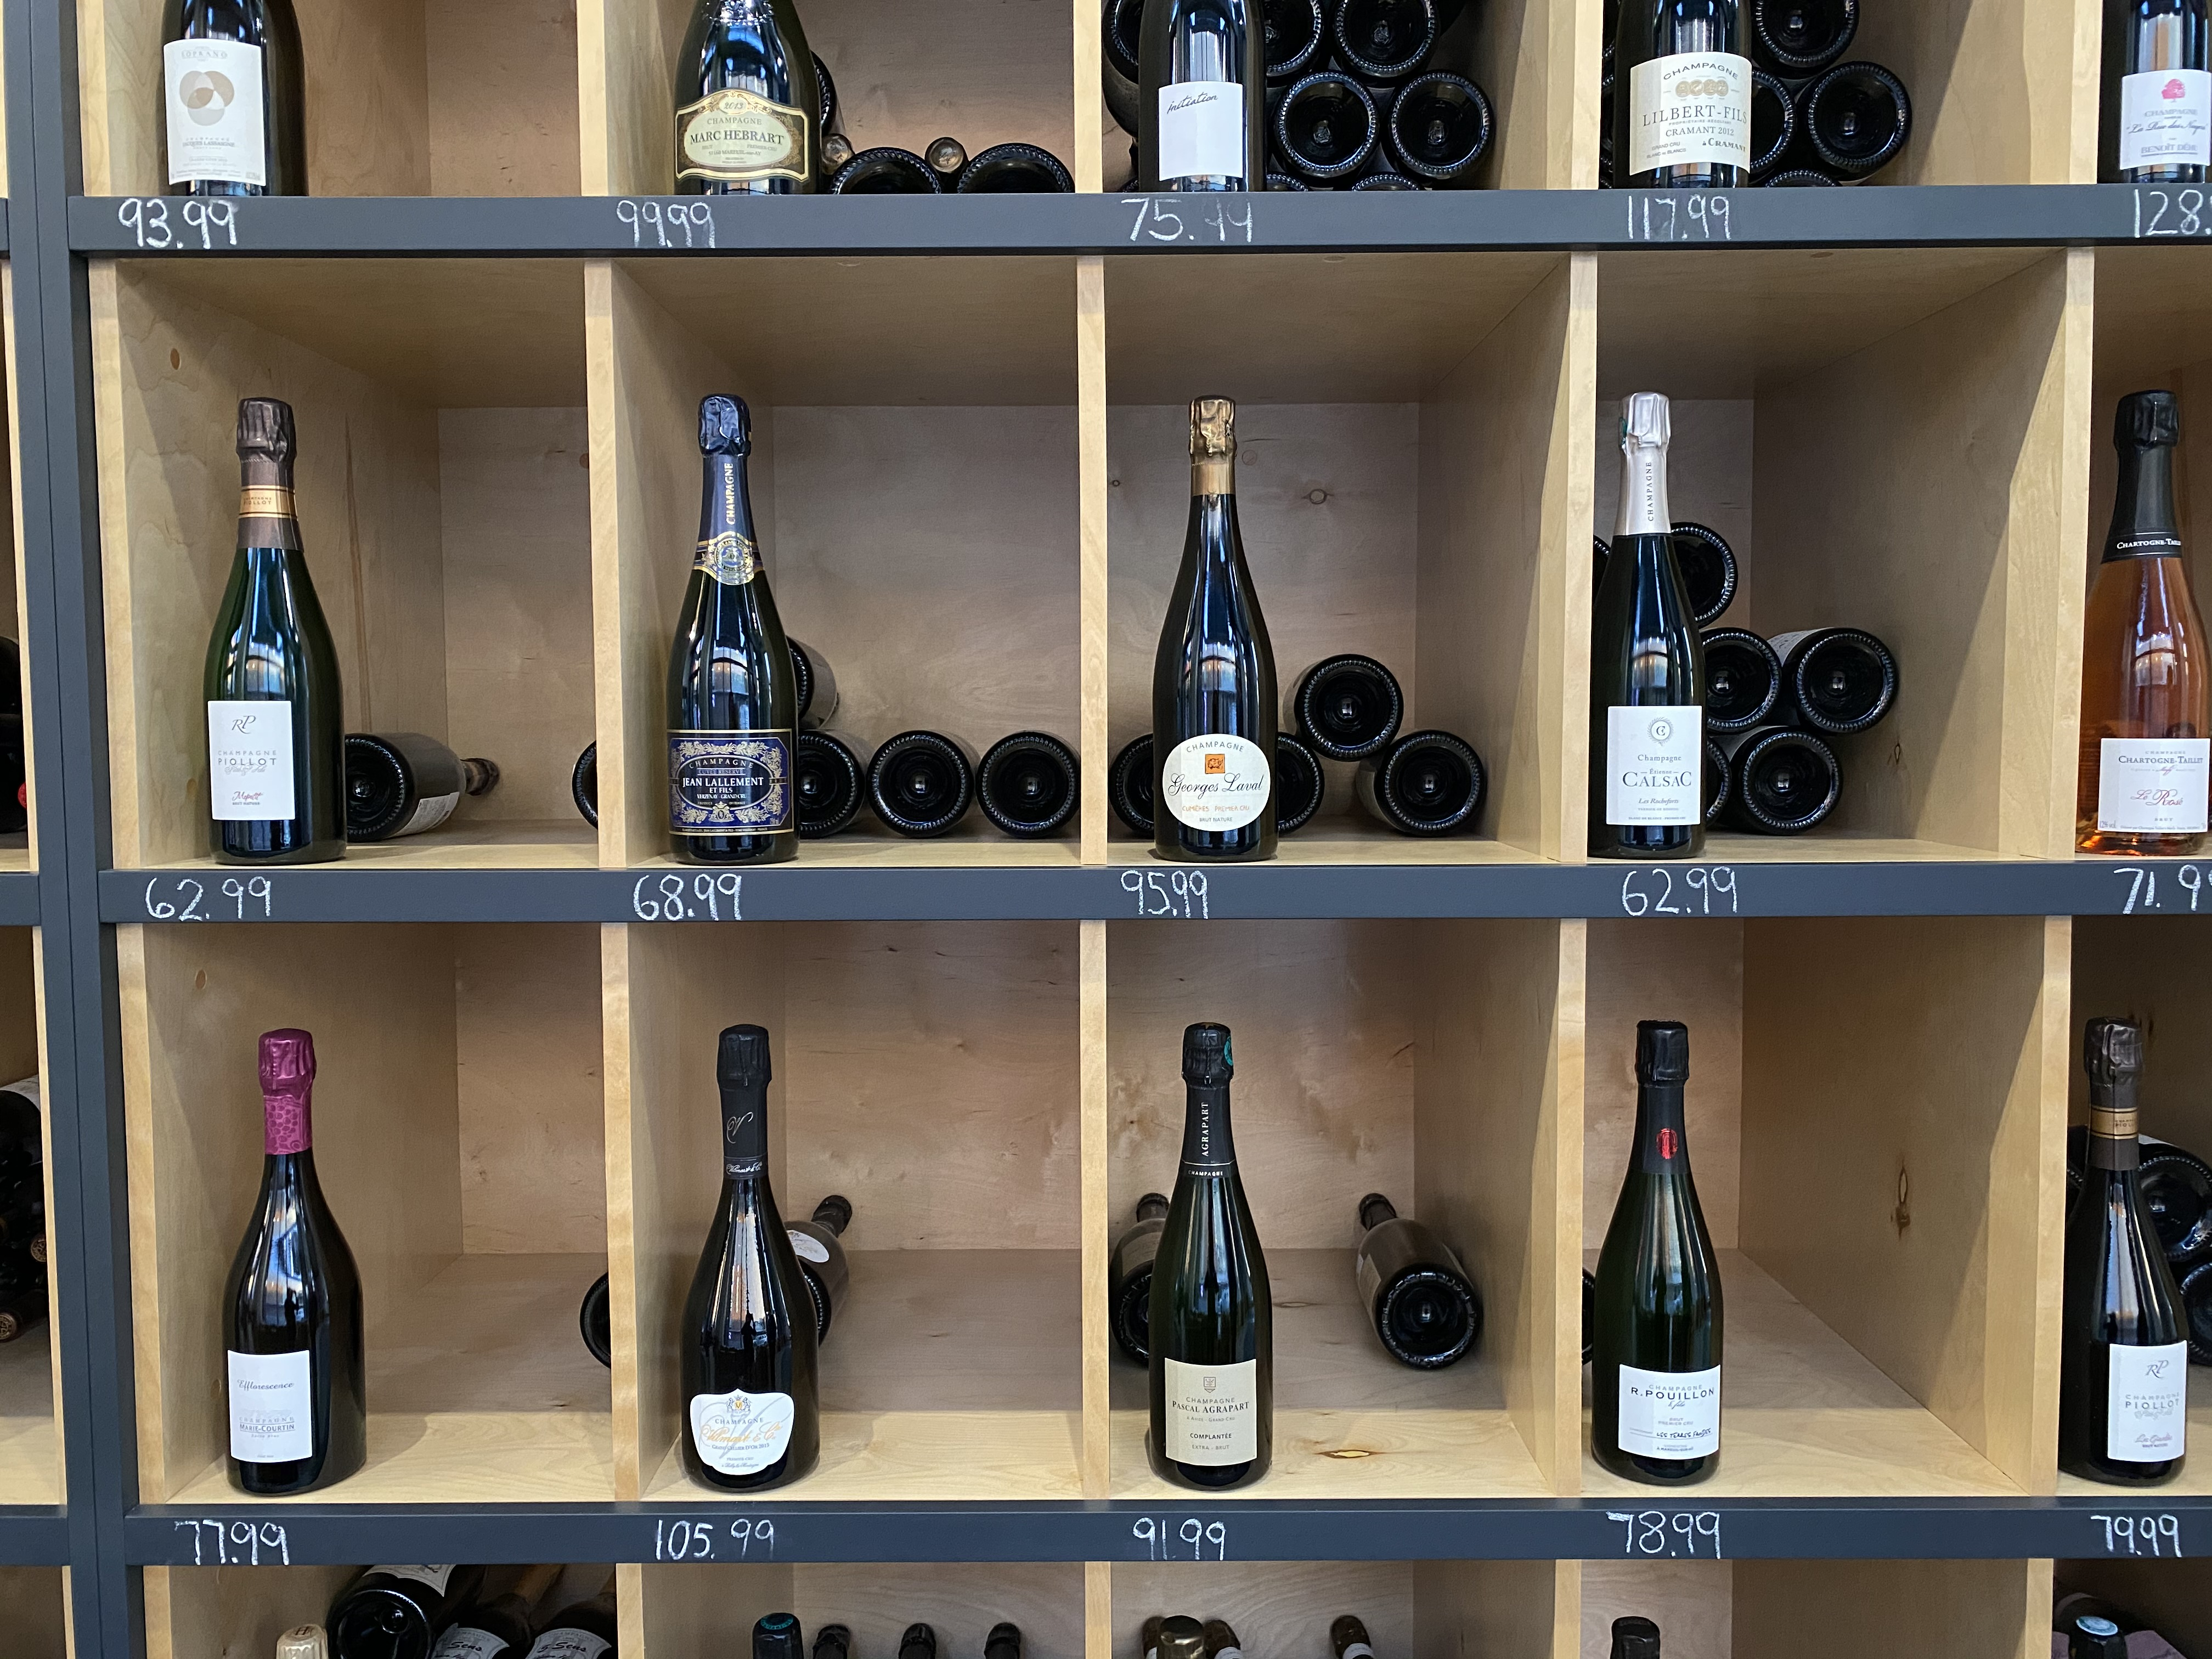 Wine shop owners speak about how looming impending tariffs on European wine may affect their businesses